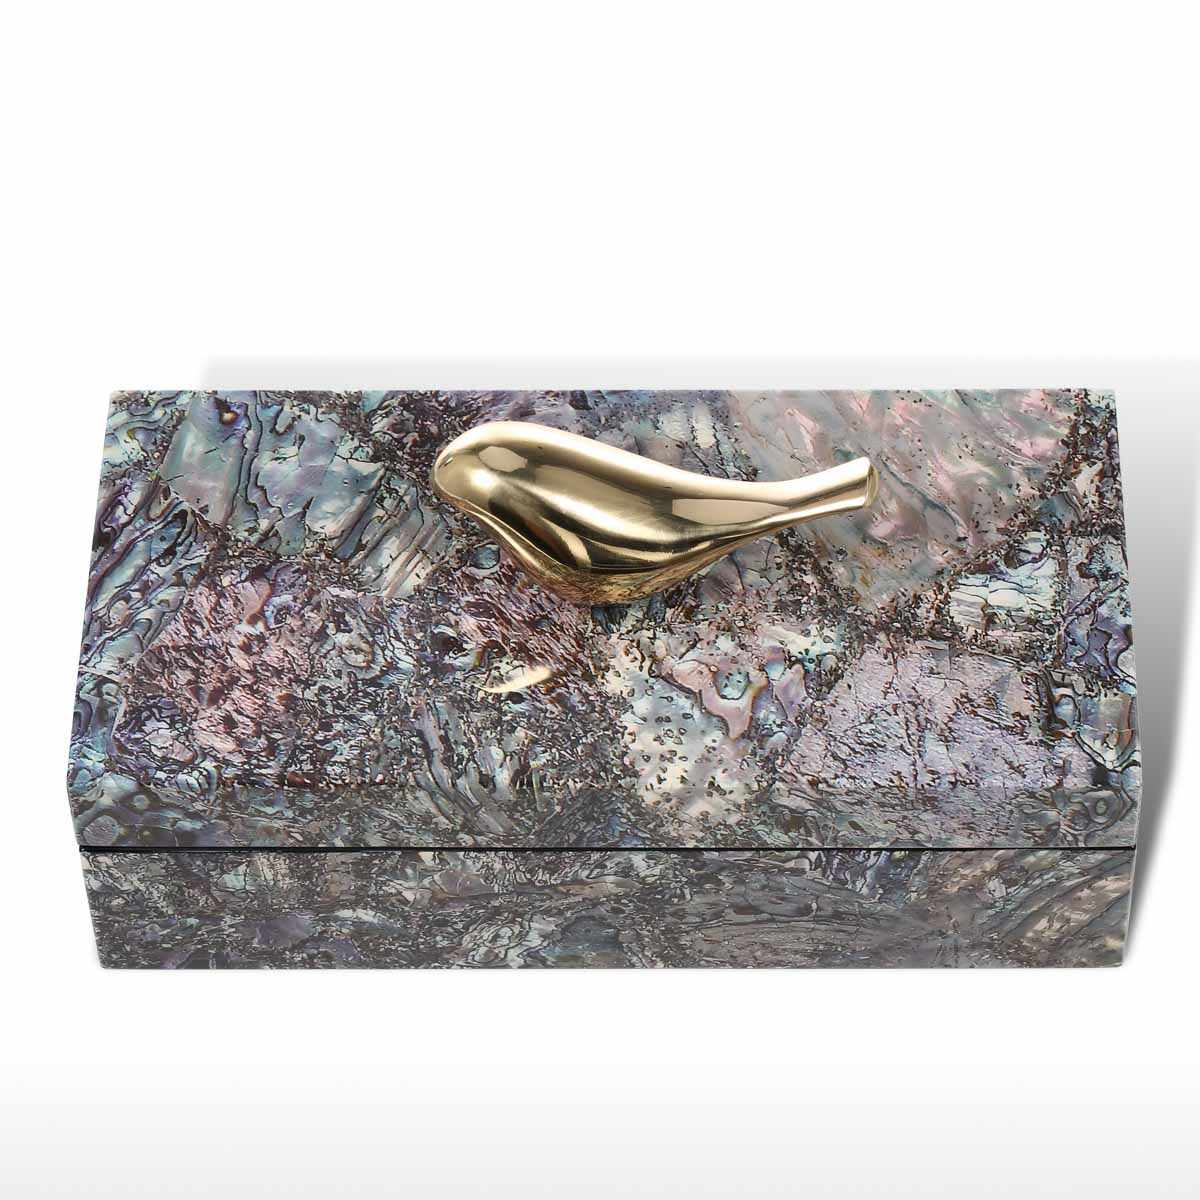 Tooarts Jewelry Box with Copper Bird Wooden Trinket Decoration Ring Necklace Storage Box Birthday Gifts for Women Black Velvet